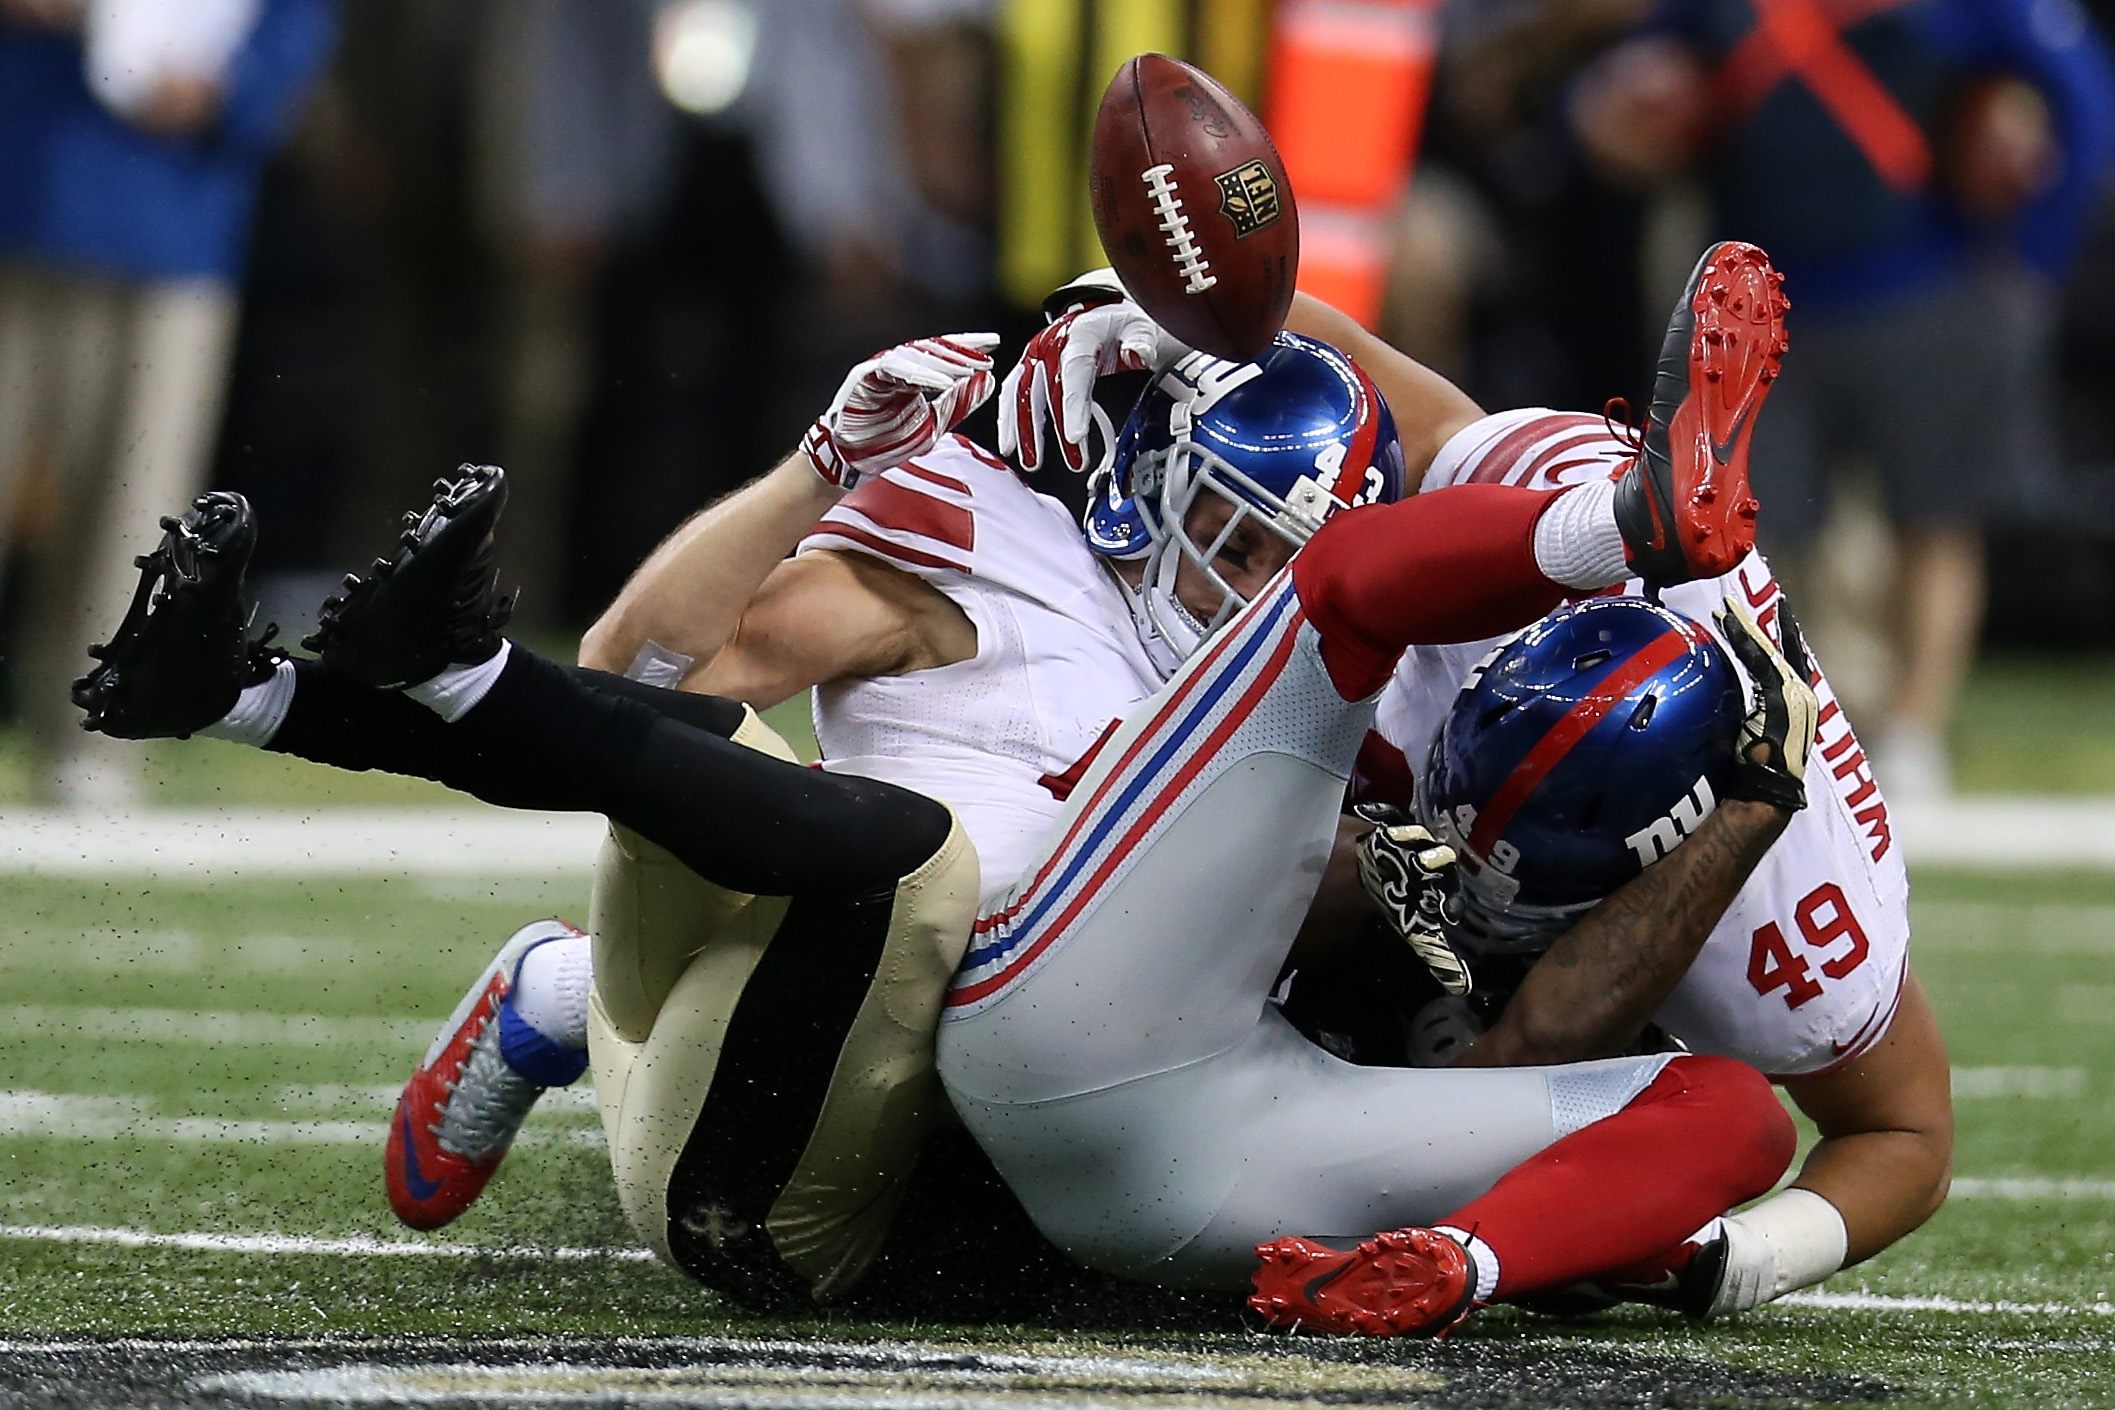 Marcus Murphy fumbles the games final punt return, leading to a game-changing face mask penalty on Giants' punter Brad Wing